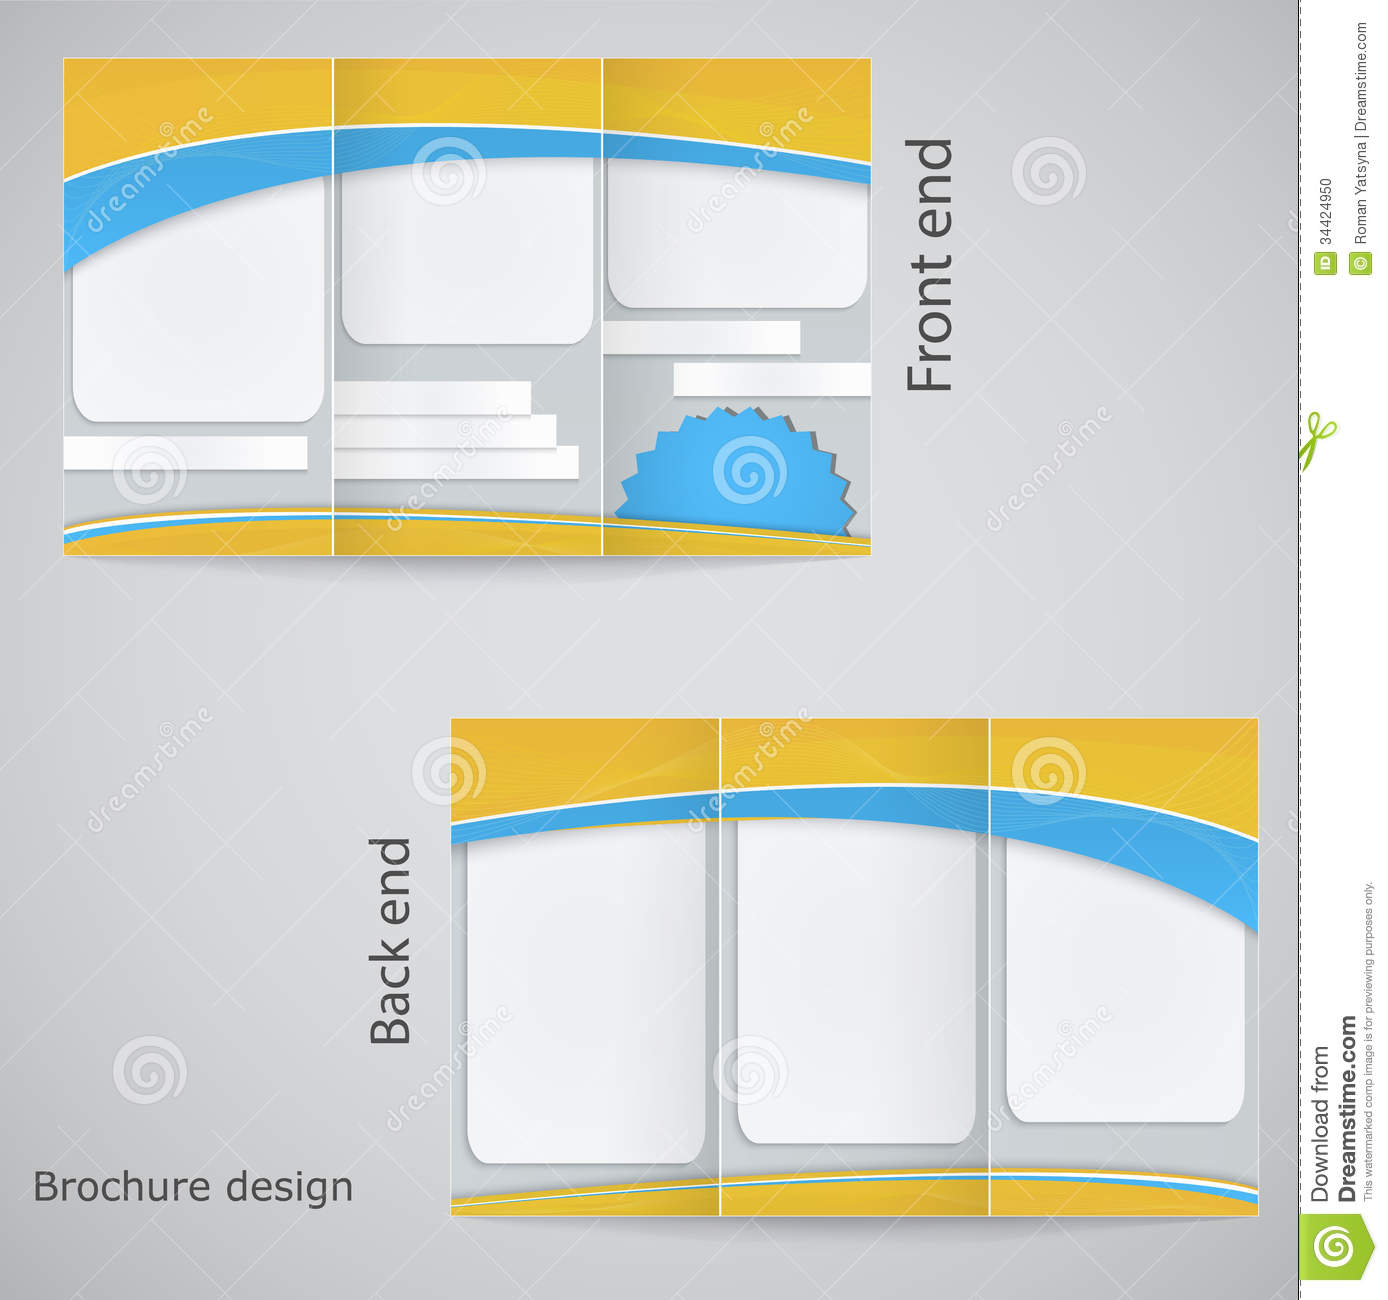 Tri fold brochure design stock vector image of branding for Brochure samples templates